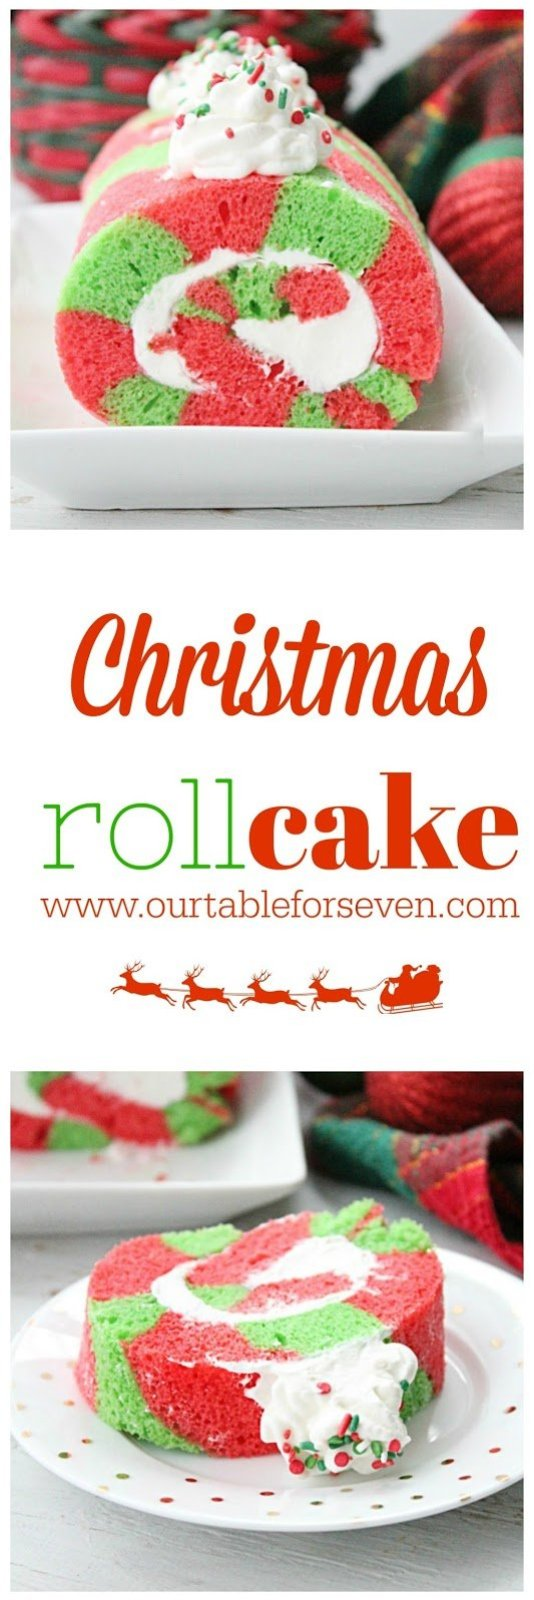 Christmas Roll Cake from Table for Seven